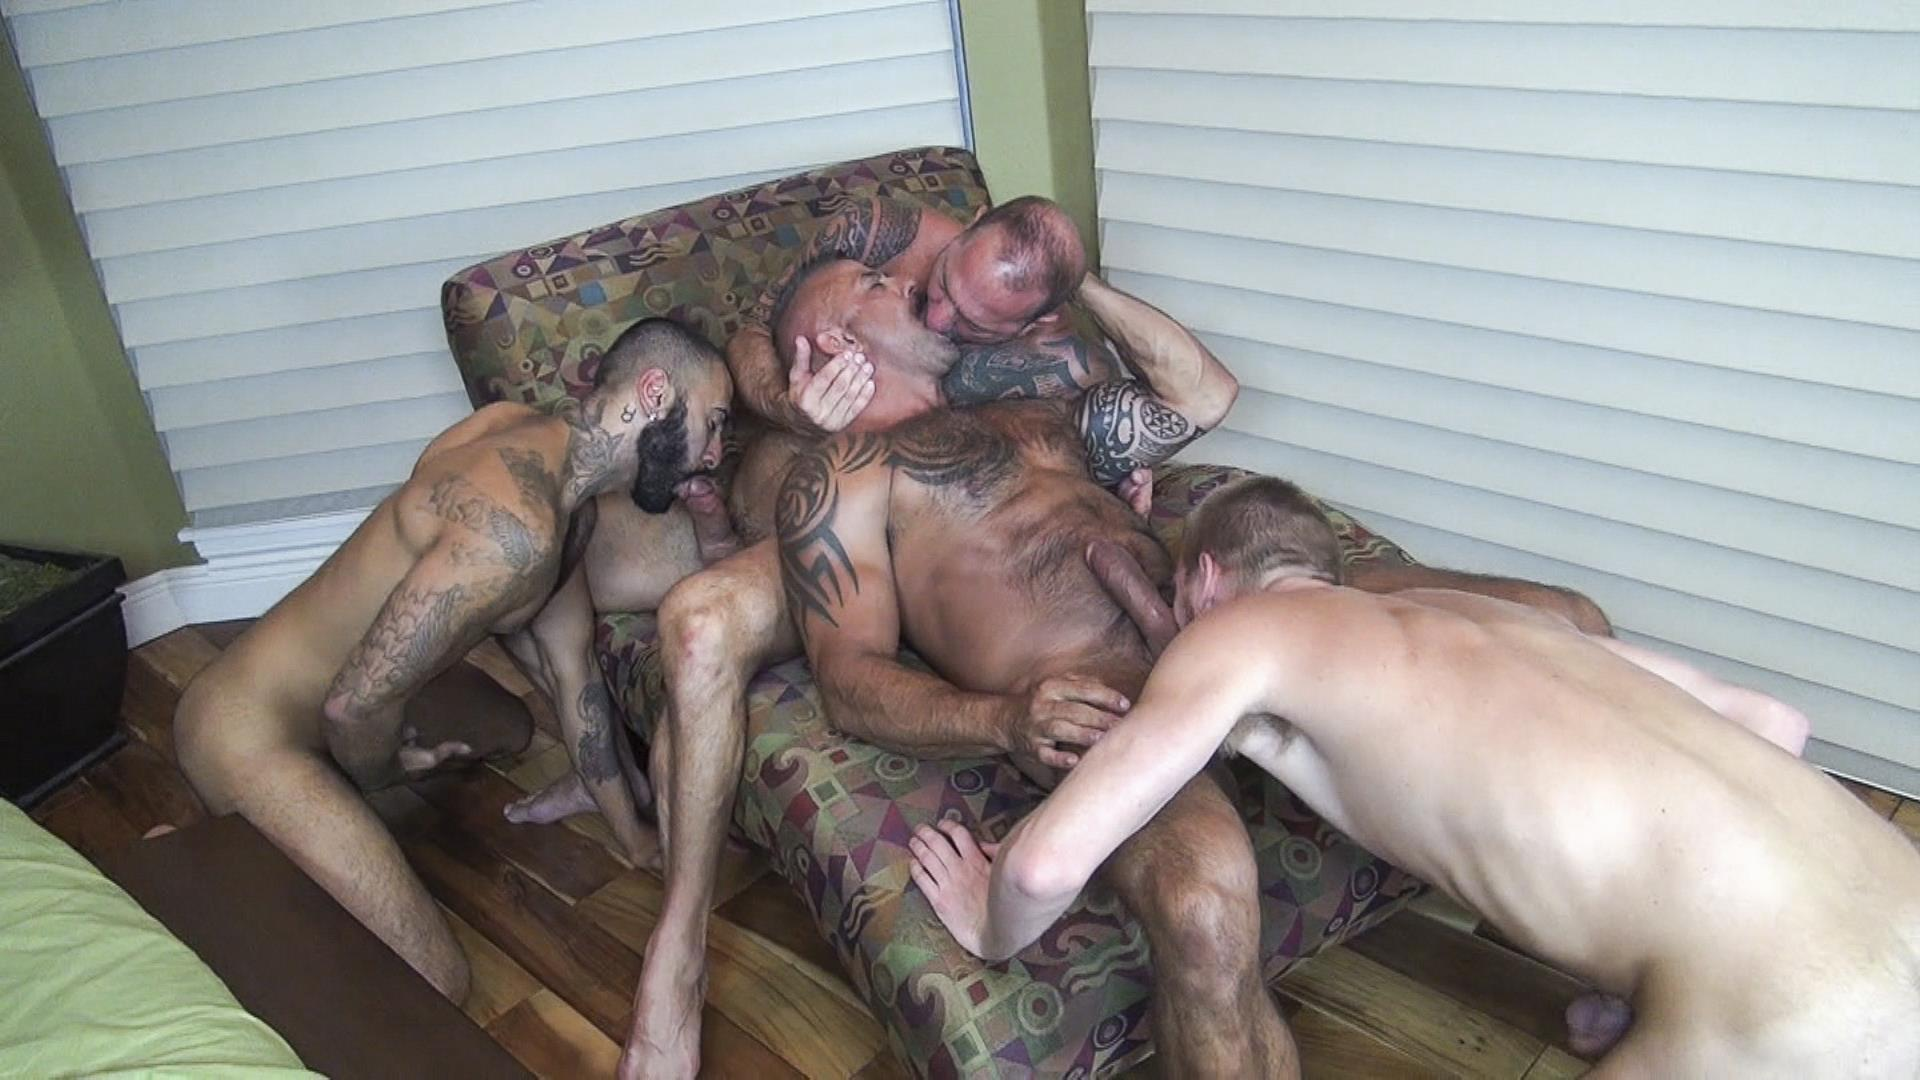 Raw-Fuck-Club-Vic-Rocco-and-Rikk-York-and-Billy-Warren-and-Job-Galt-Bareback-Daddy-Amateur-Gay-Porn-08 Four Hairy Muscle Daddies In A Bareback Fuck Fest Orgy